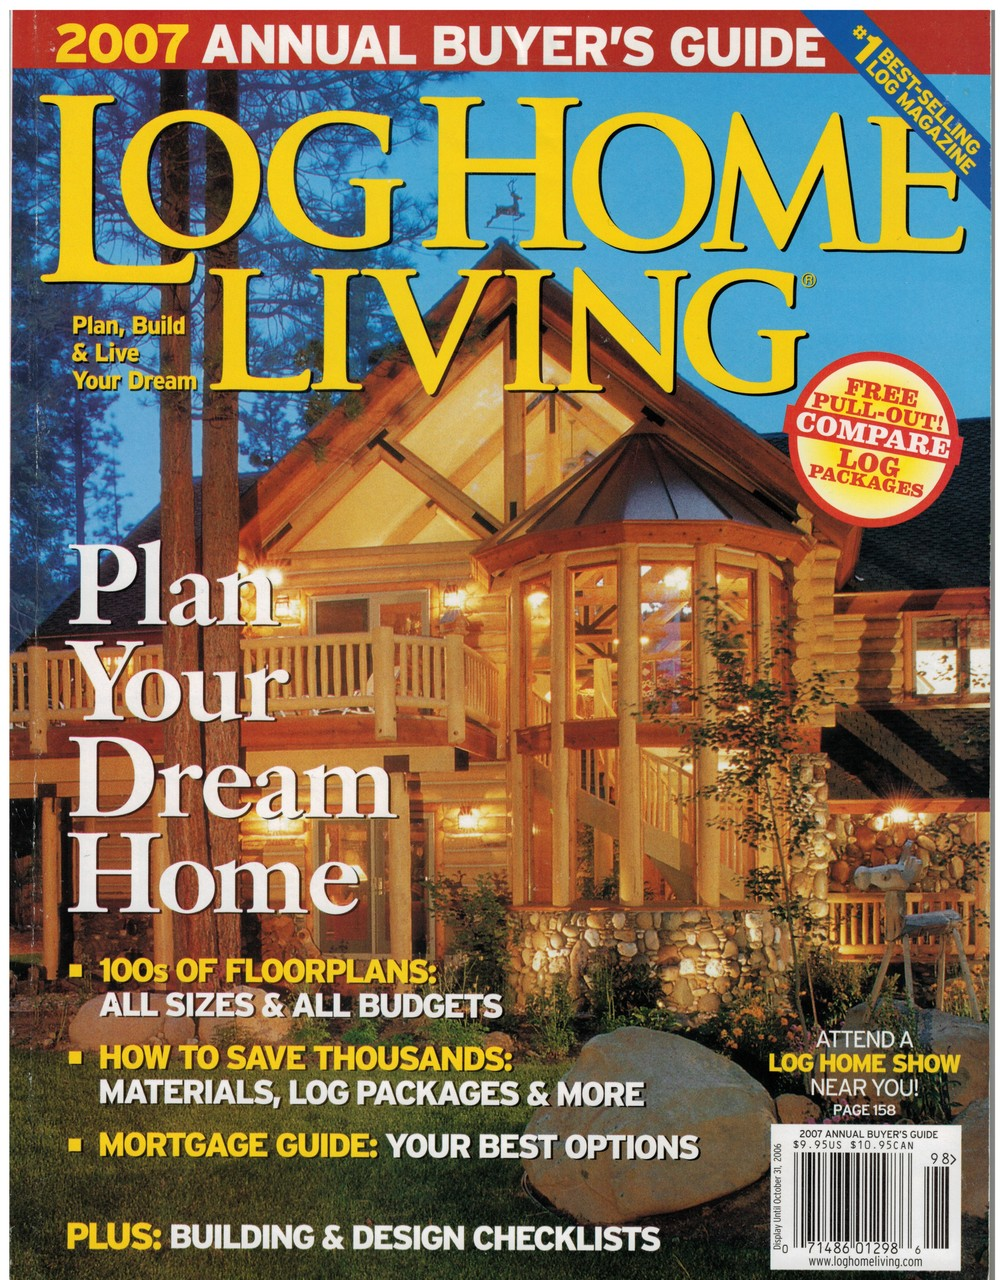 12 Log Home Living-2007 Annual Buyers Guide.jpg